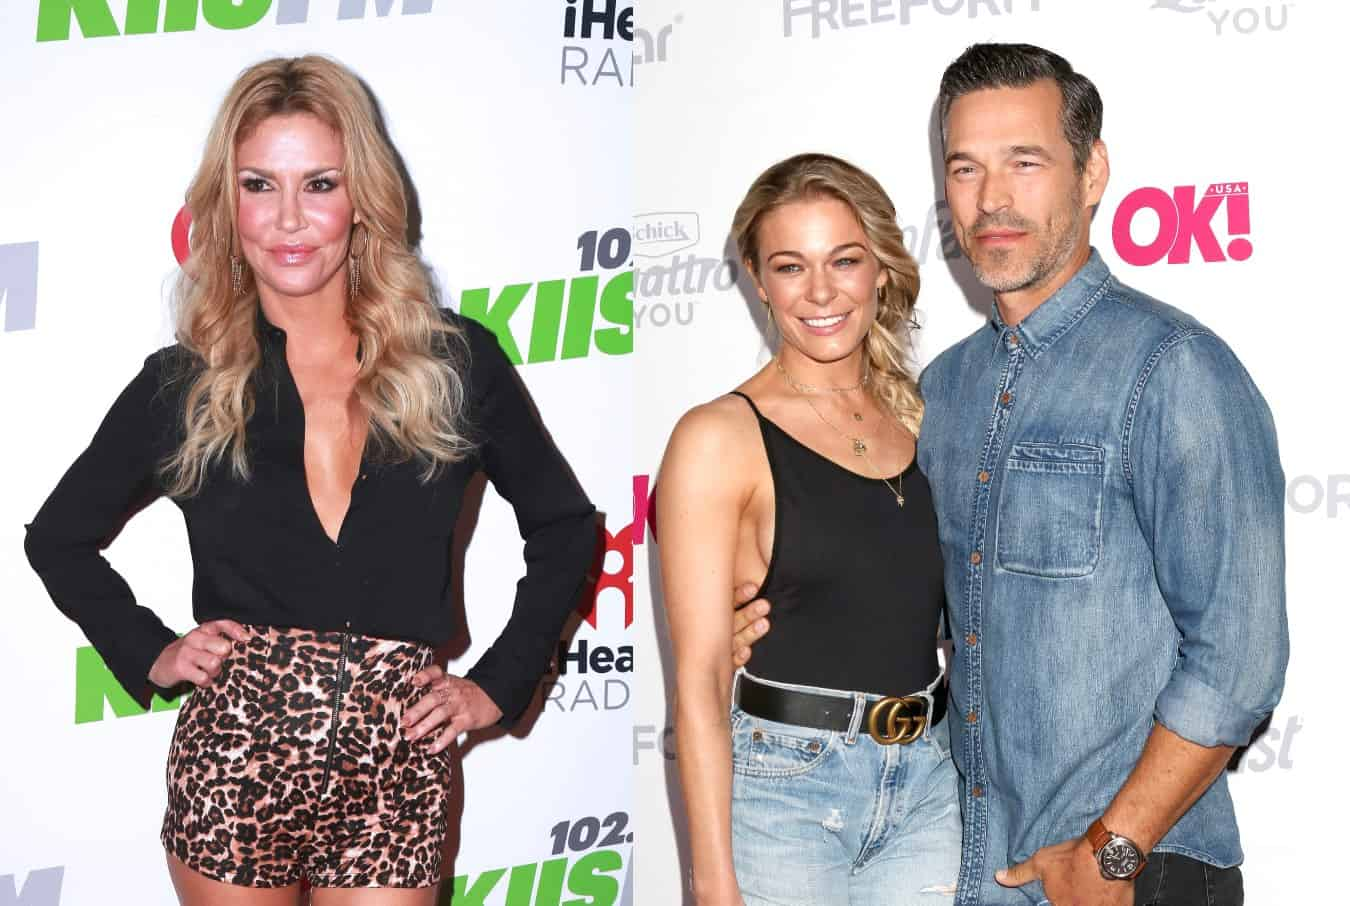 RHOBH's Brandi Glanville Shades Leann Rimes and Eddie Cibrian Over Not Inviting Her Over for Christmas After Sharing a 'Modern Family' Photo With Them